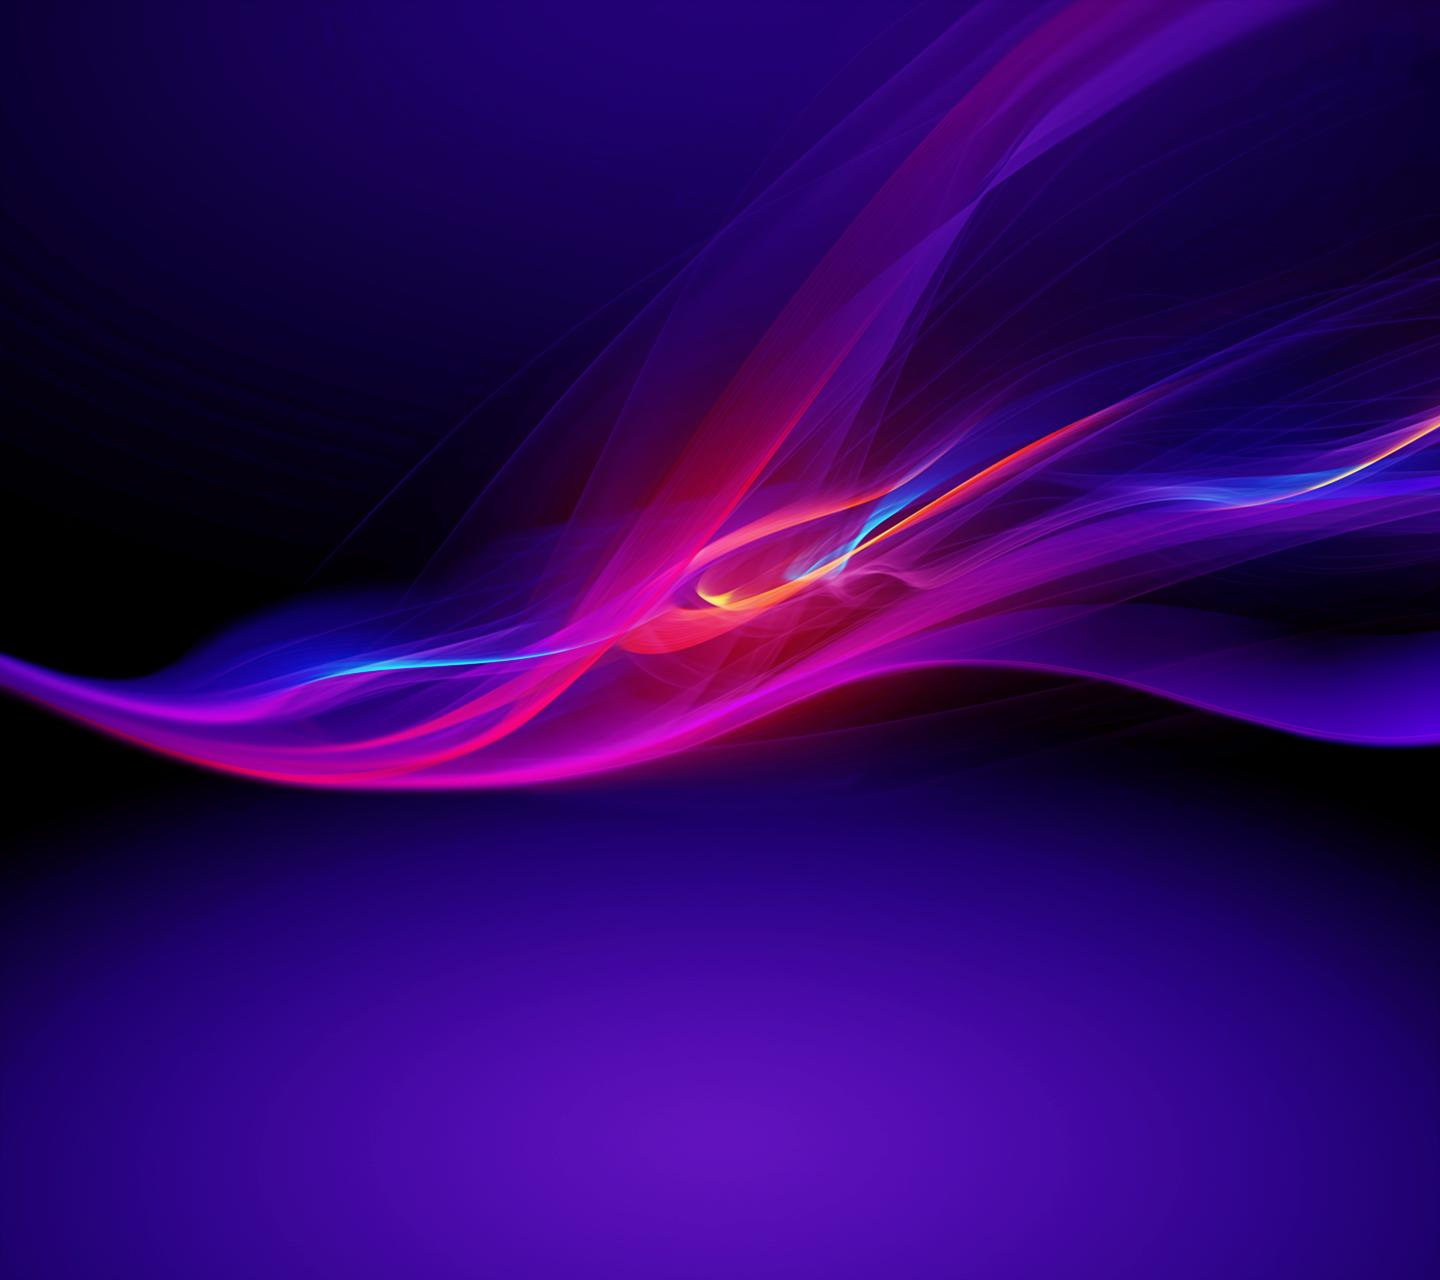 xperia z mobile wallpaper hd